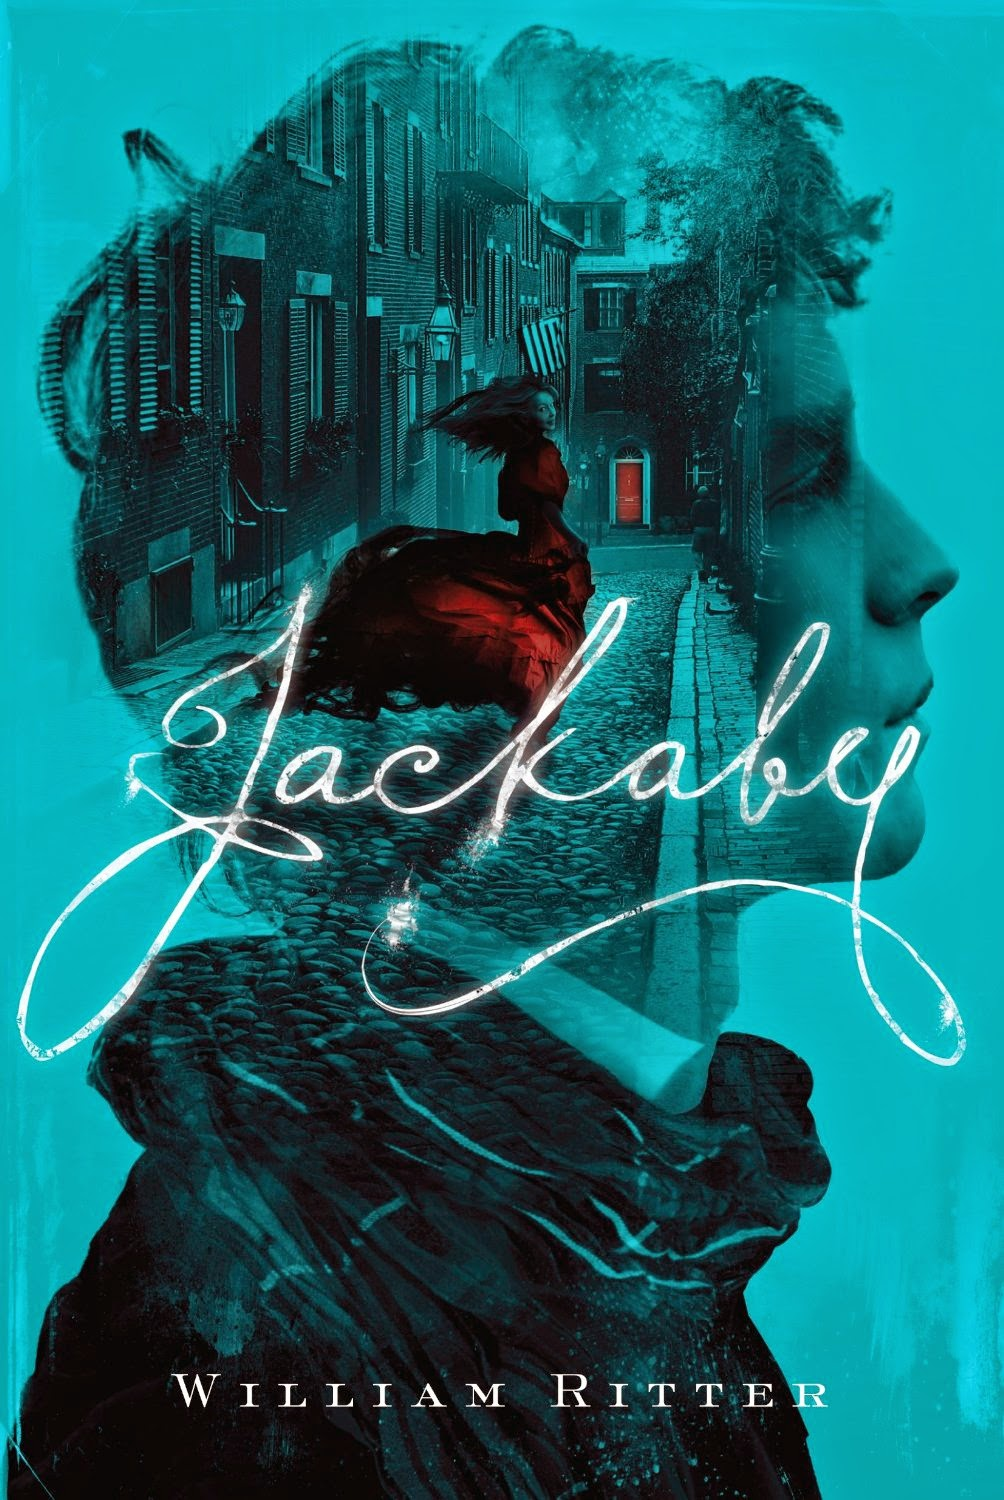 https://www.goodreads.com/book/show/20312462-jackaby?from_search=true